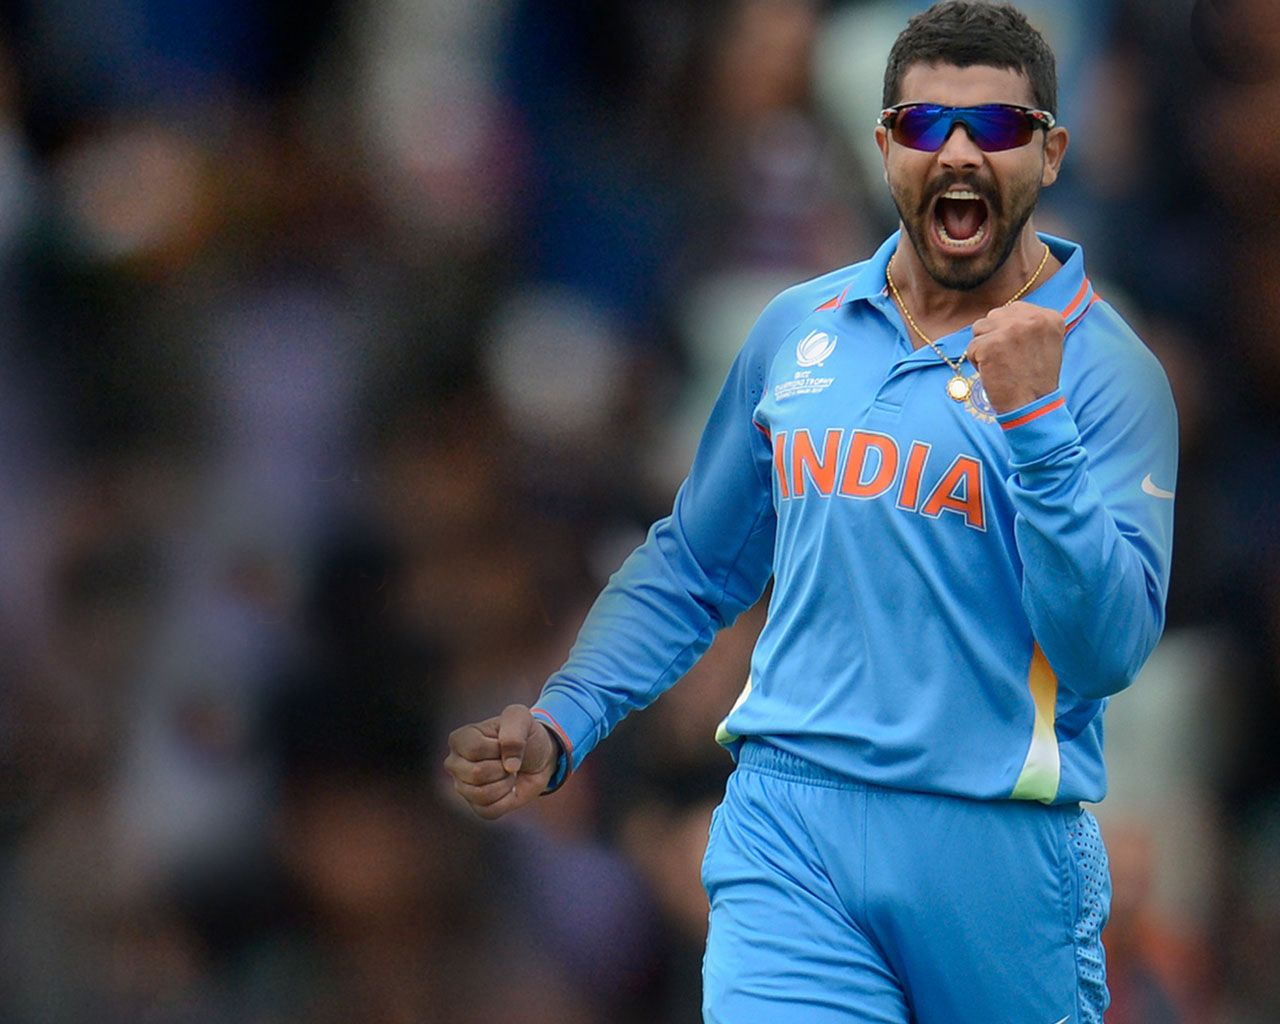 ravindra jadeja indian cricketer hd wallpaper Indian